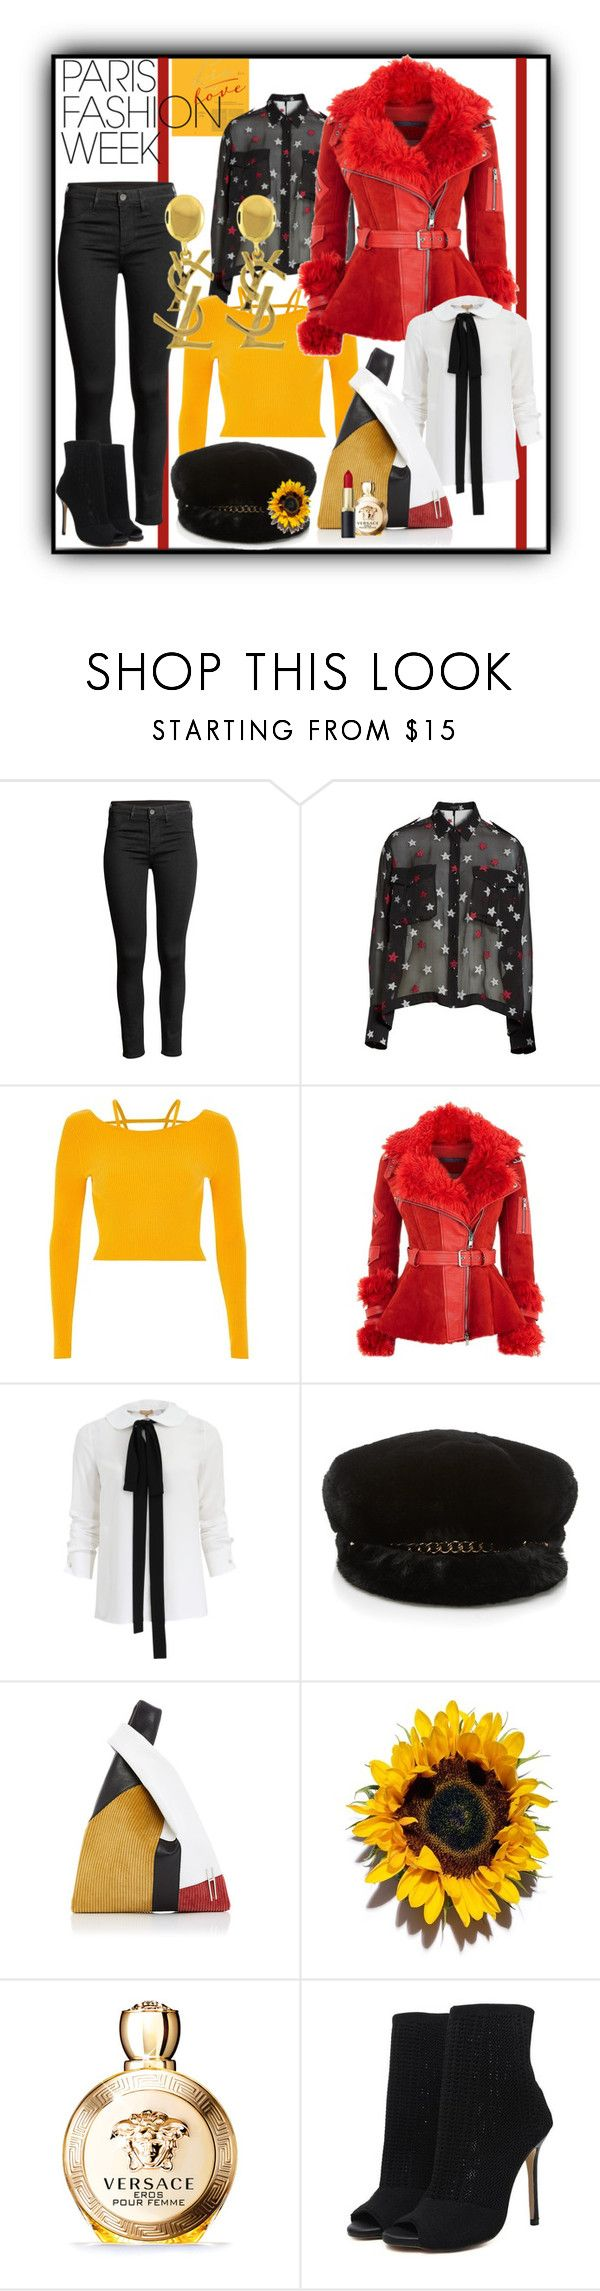 """""""Red and Yellow"""" by tgtigerlily ❤ liked on Polyvore featuring rag & bone, River Island, Alexander McQueen, Michael Kors, Amaranta, Yves Saint Laurent and Versace"""